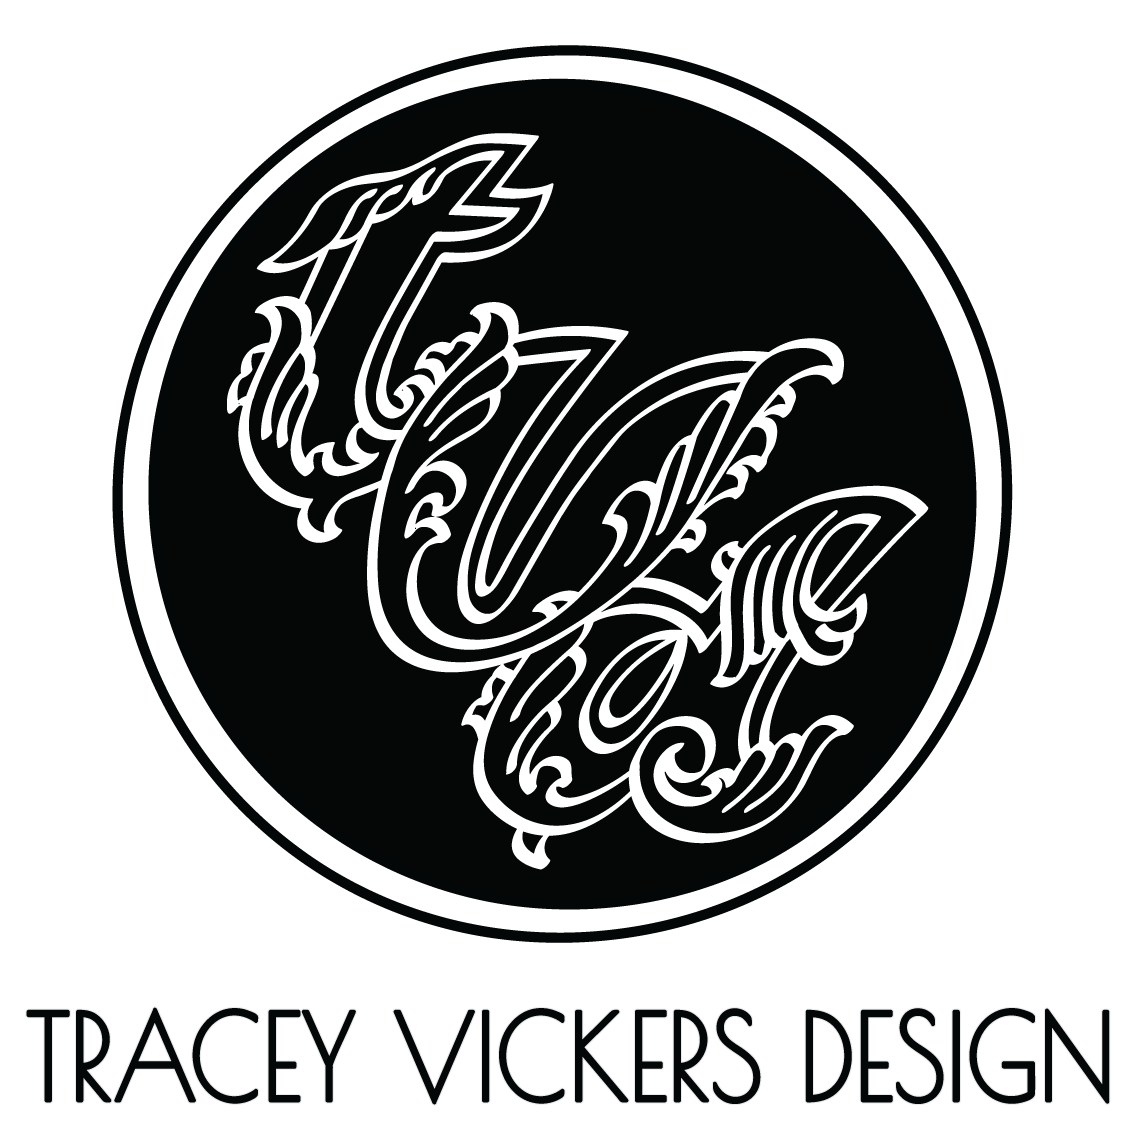 Tracey Vickers Design